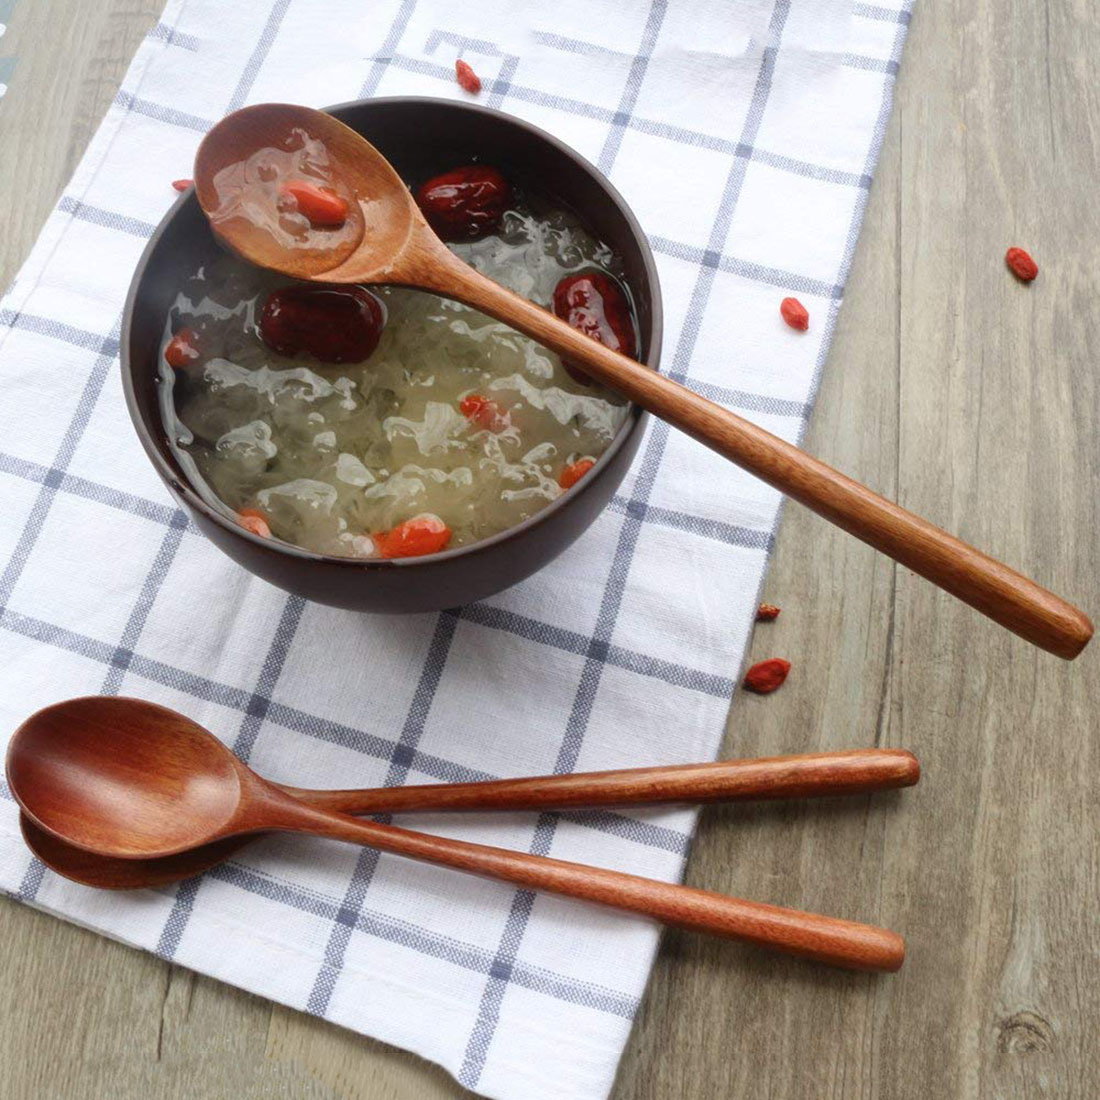 Wooden Spoon, 6 Pieces Wood Soup Spoons for Eating Mixing Stirring Cooking, Long Handle Spoon with Japanese Style Kitchen Utensi